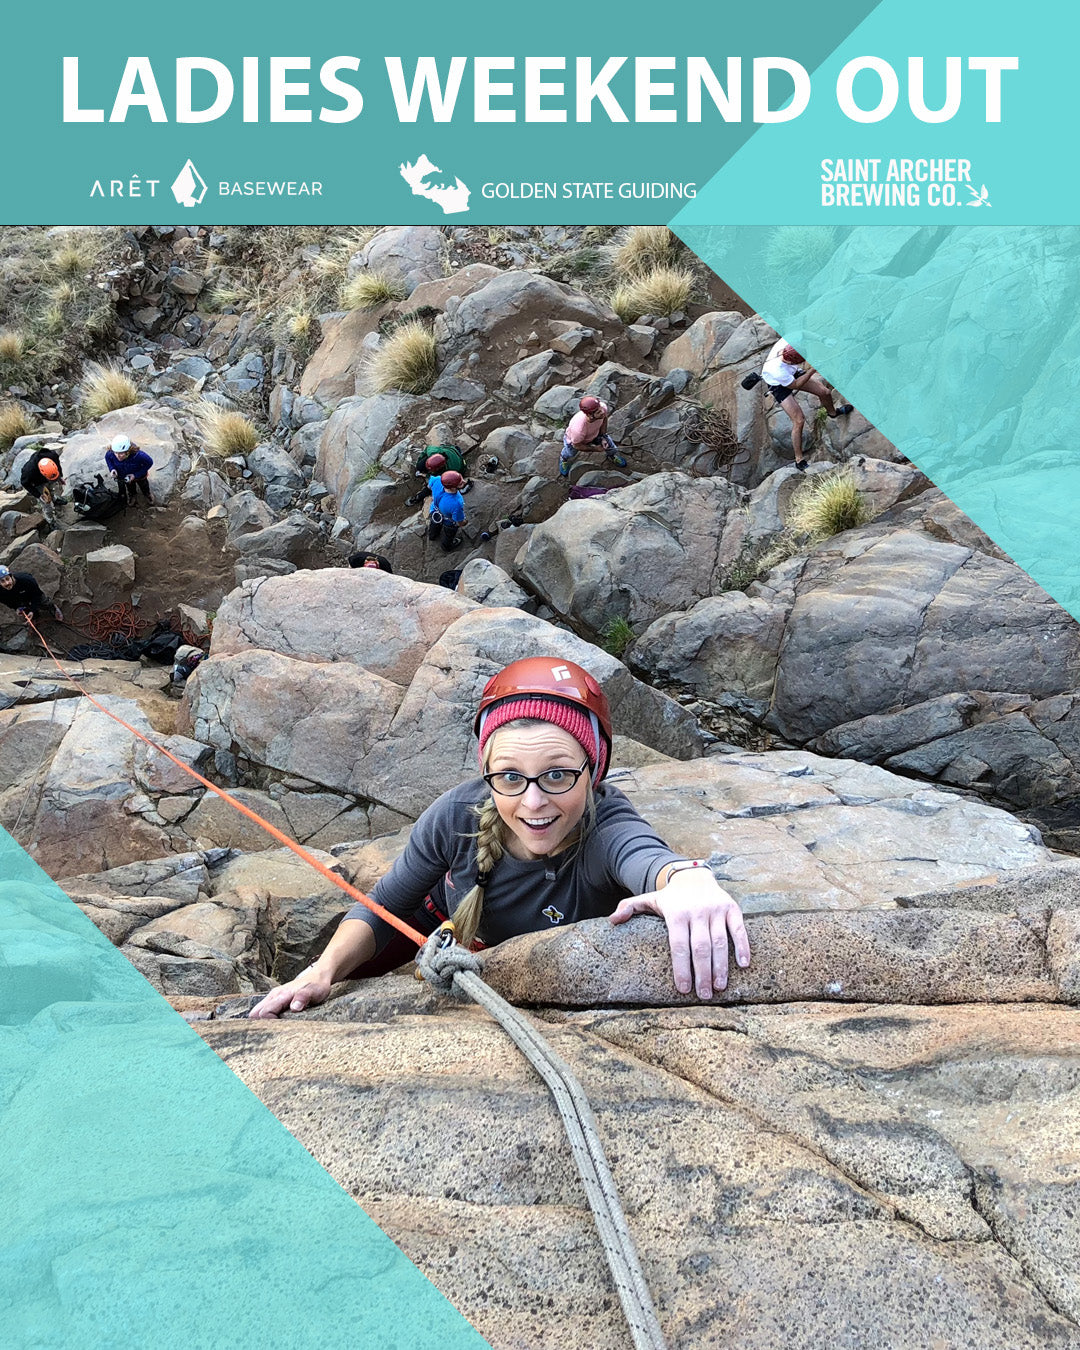 Ladies Weekend Out! A Two Day Women's Climbing Clinic